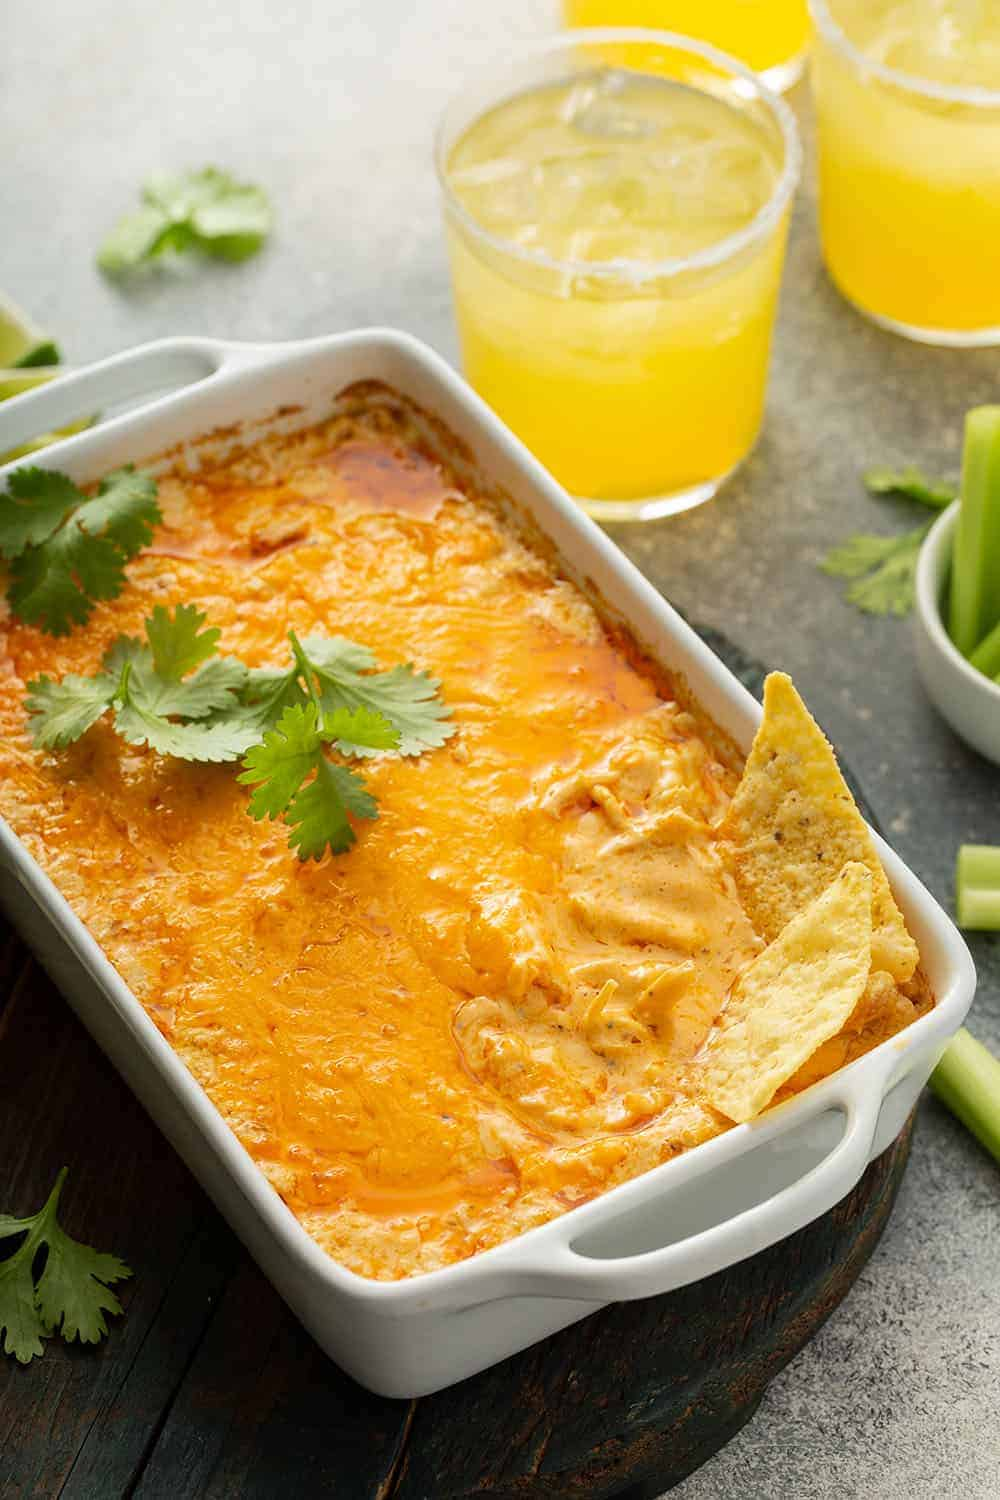 Tortillas sticking out of a buffalo chicken dip in a white casserole dish, with margaritas in the background